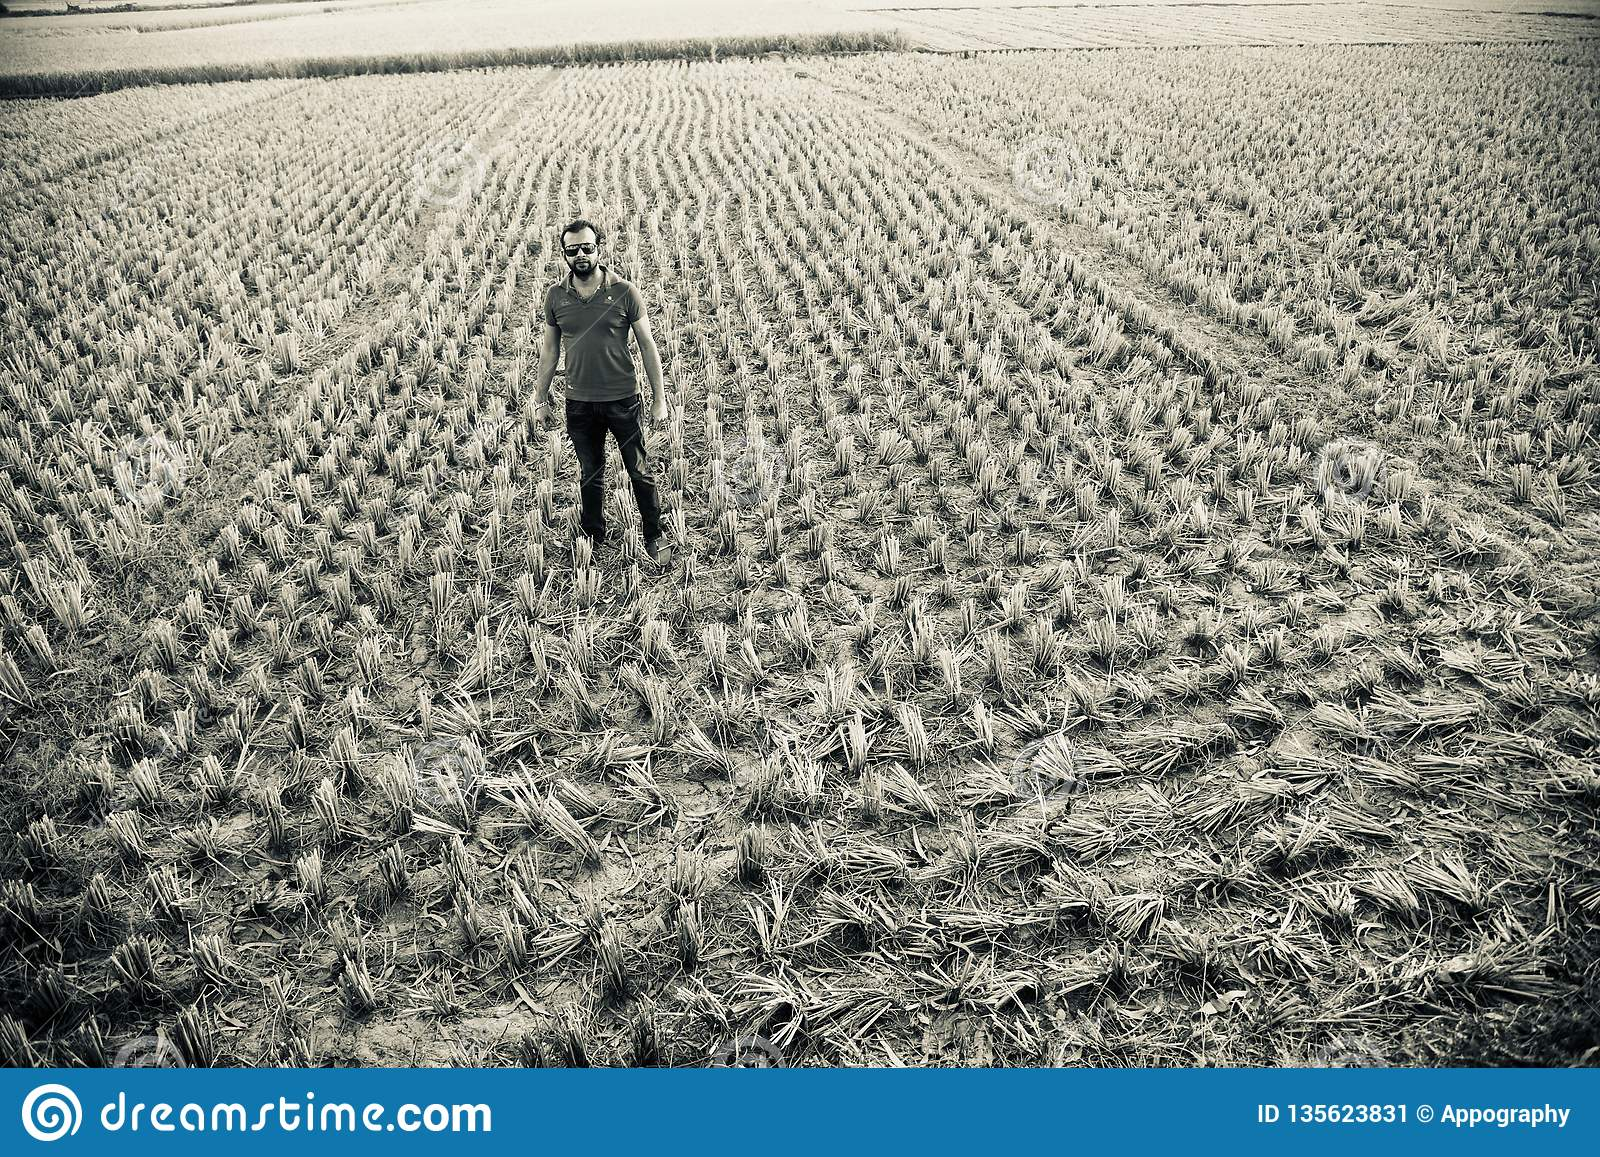 Man standing around an agricultural field unique photo